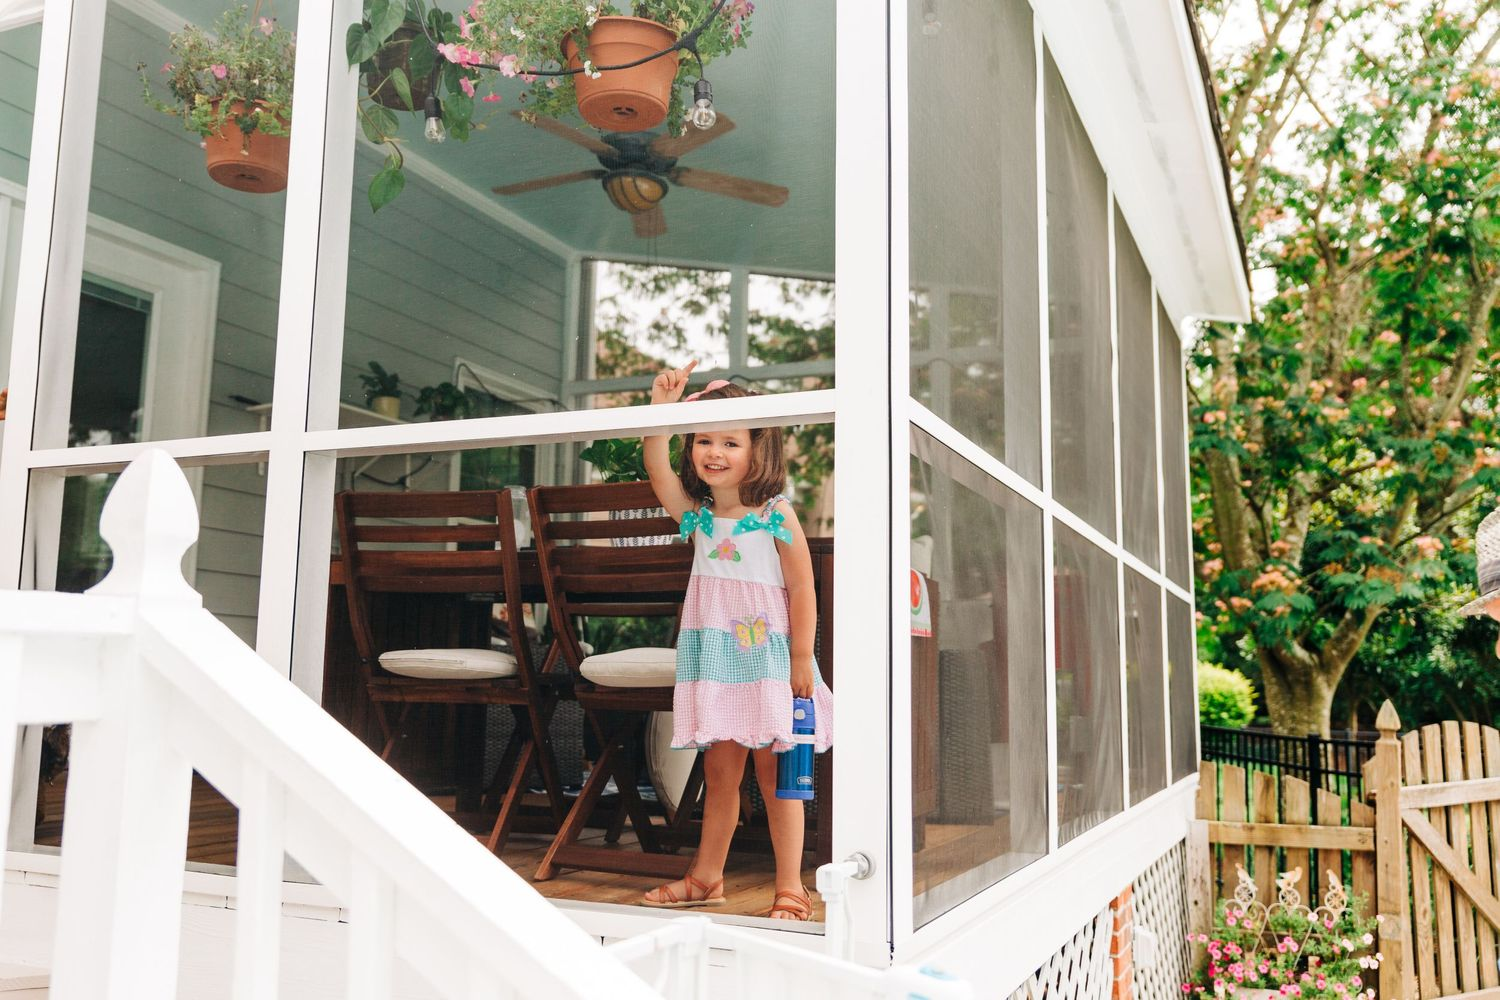 Preschooler playing on porch for backyard family photography session in Charlotte, NC